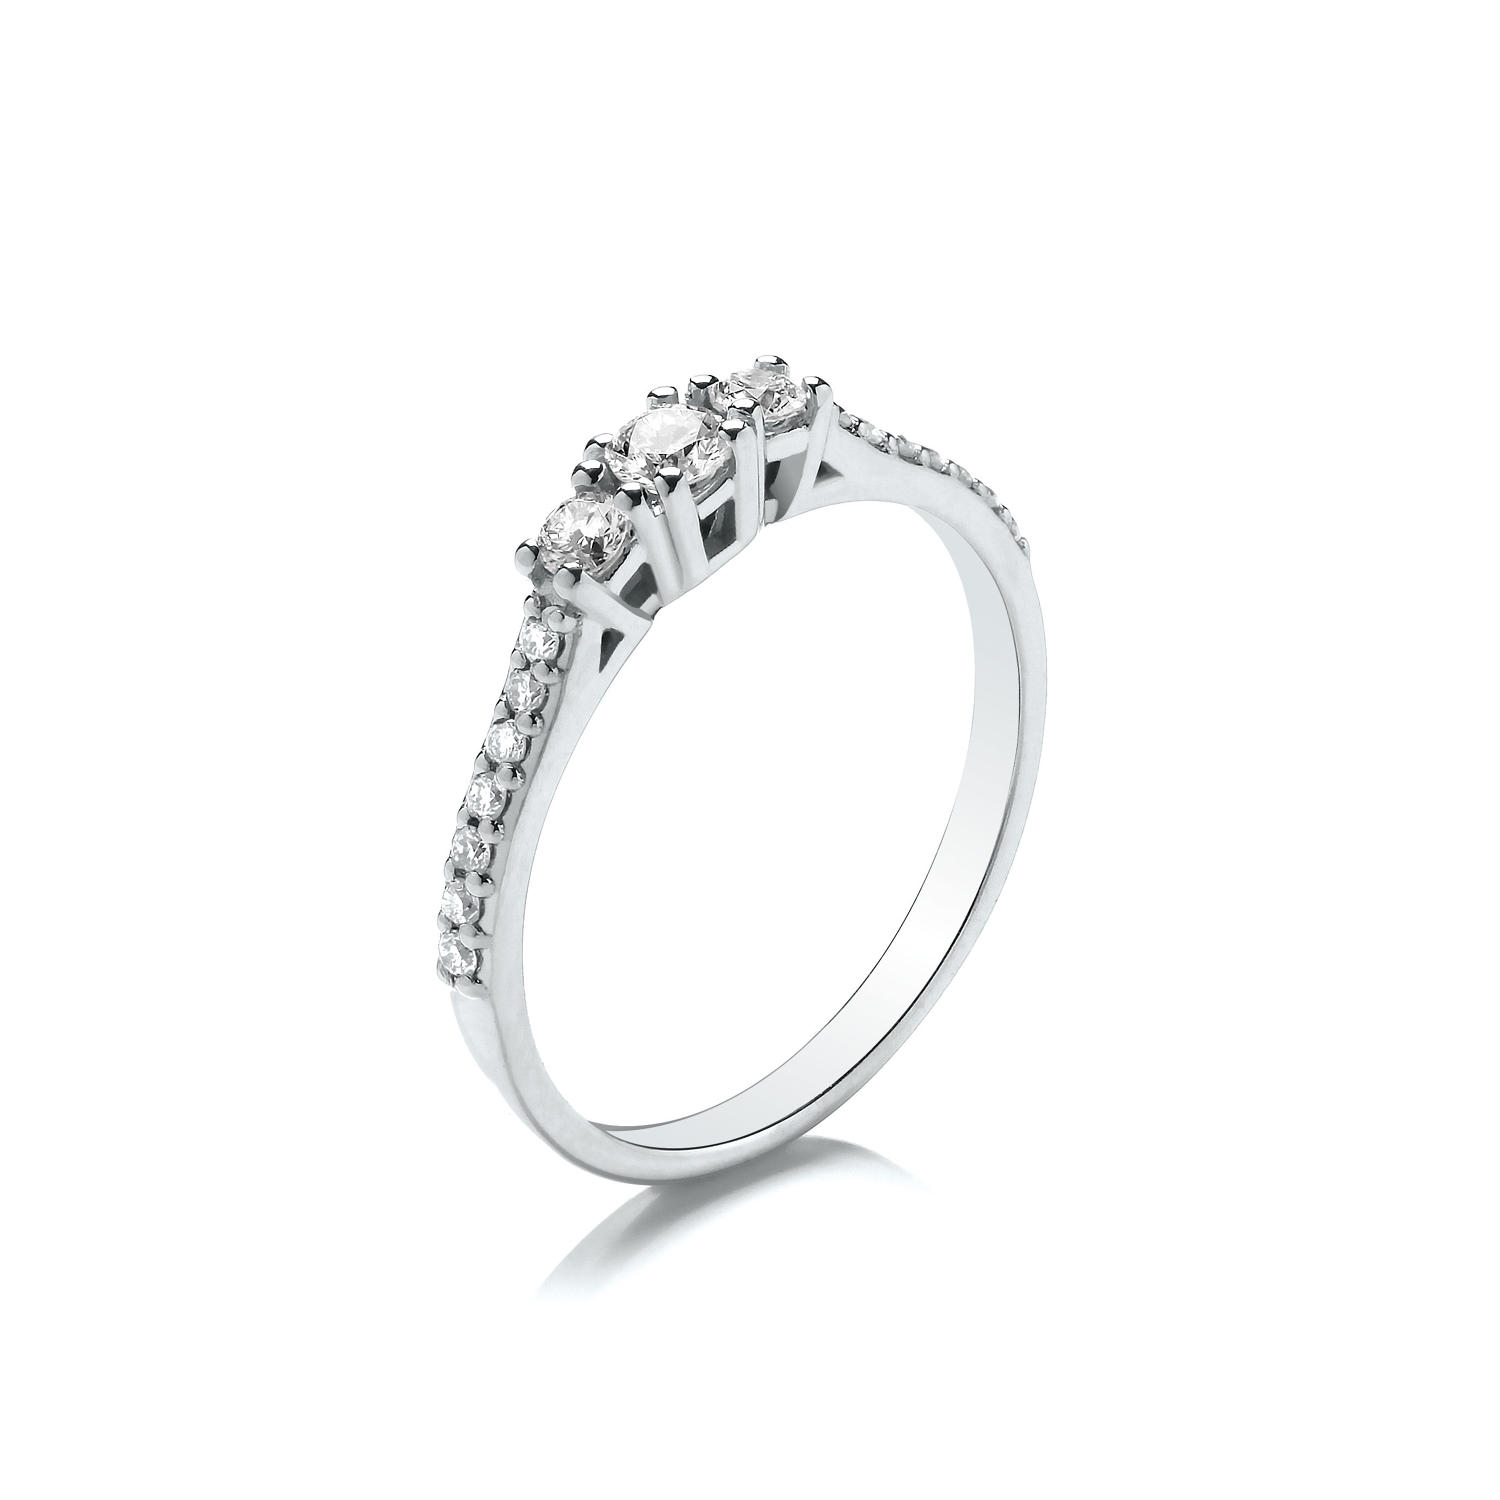 0.33ct Trilogy Ring, With Graduated Stones and Set Shoulders